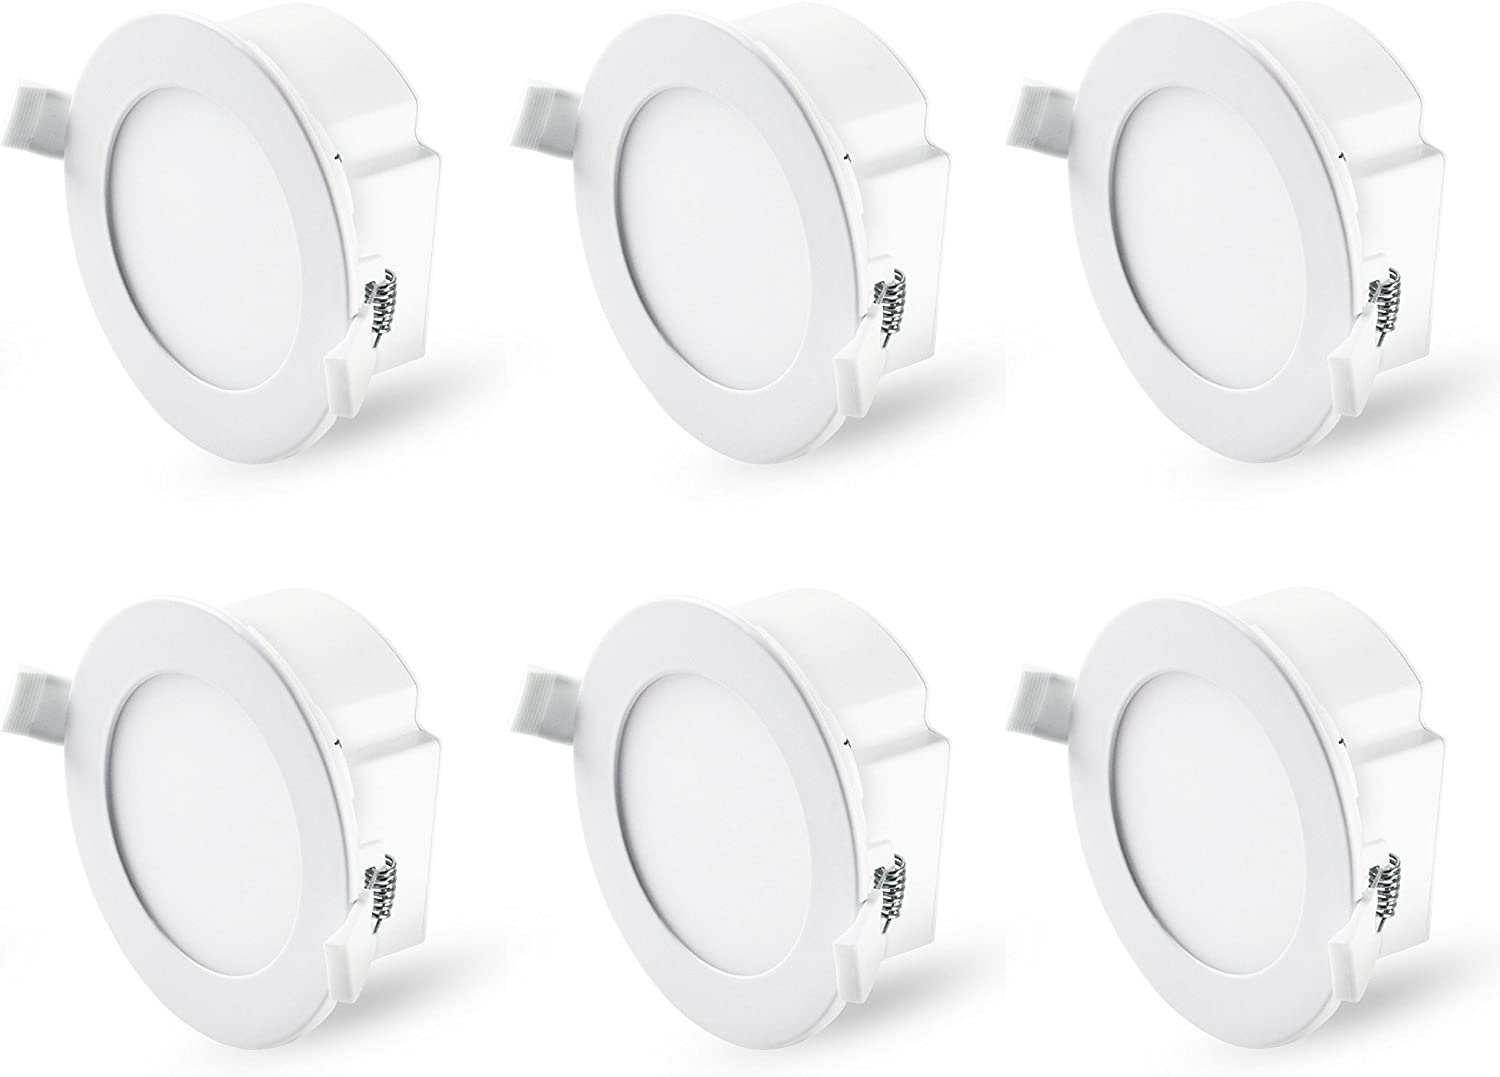 Hyperikon 4 Inch Recessed LED Downlight with Junction Box, Dimmable, 8.5W (60W Equiv), Retrofit Recessed Lighting, 5000K, Energy Star, UL, 6 Pack